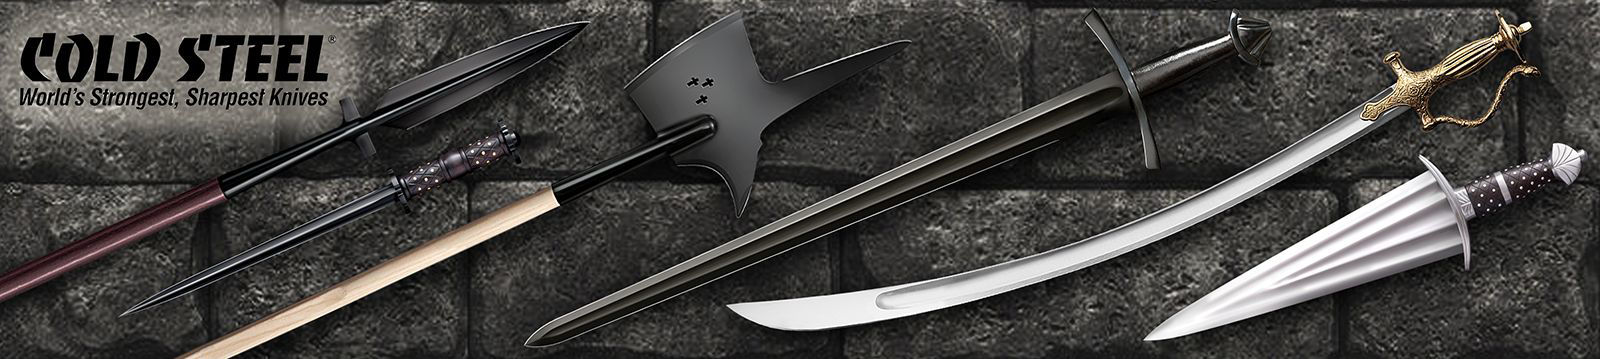 Cold Steel - The World's Sharpest Knives!